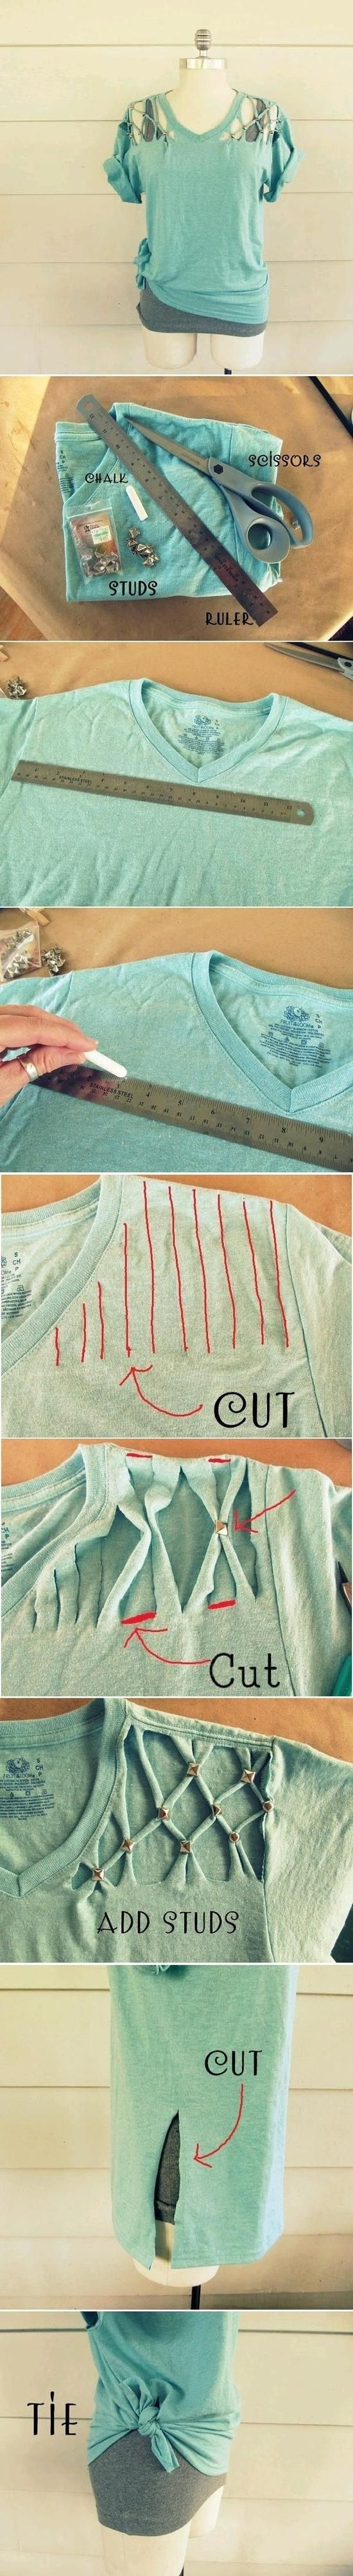 DIY Upcycled Tee into a Studded One!